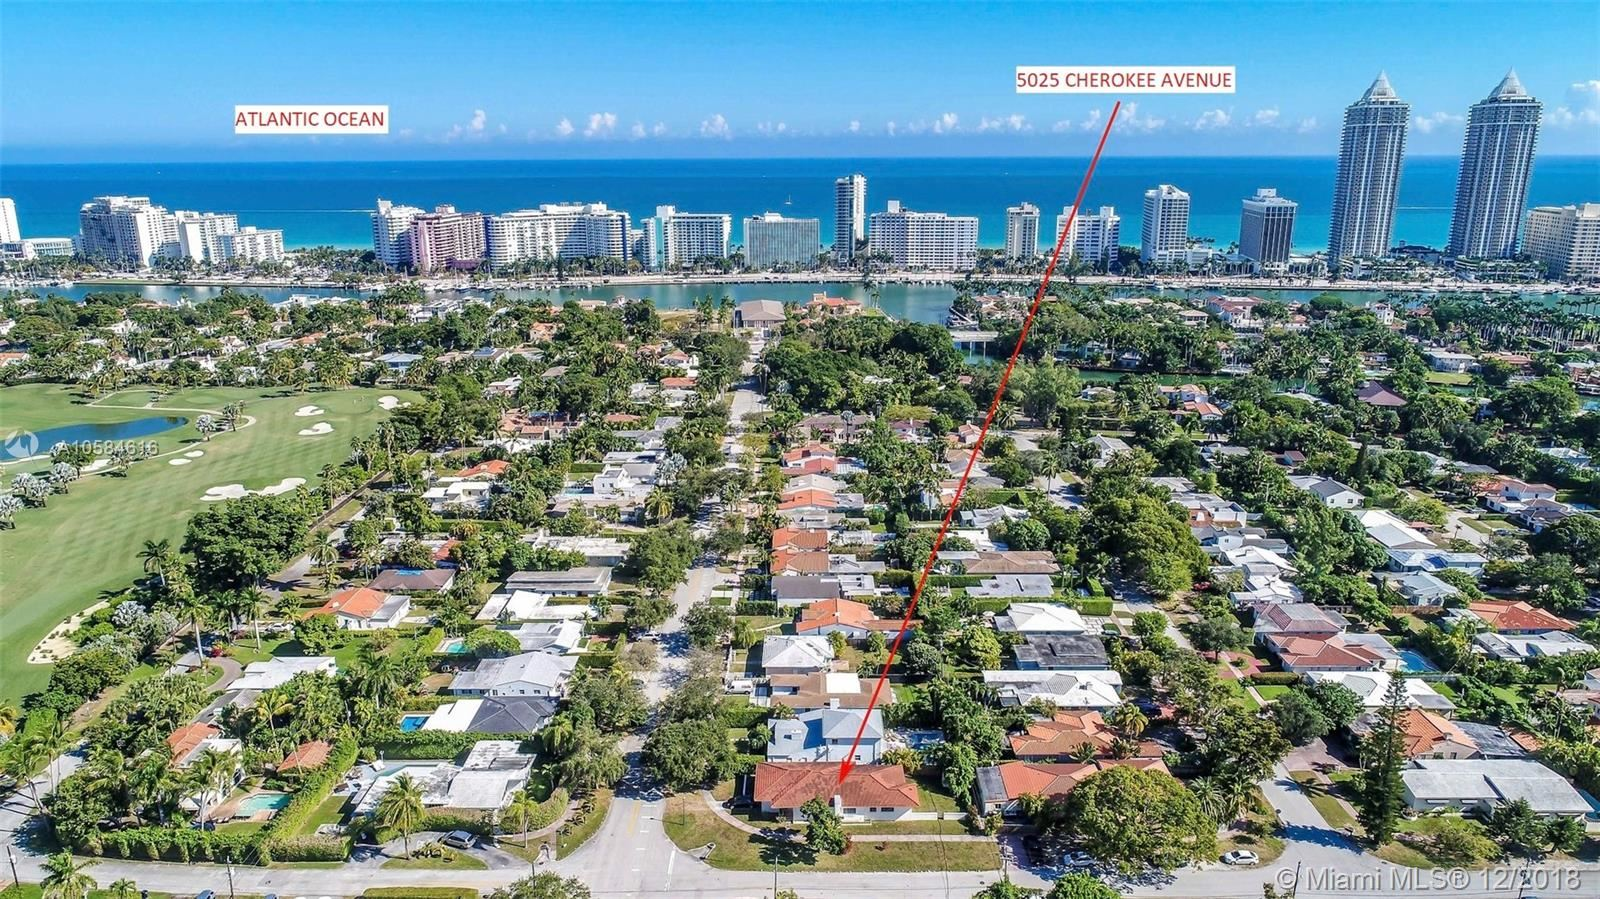 5025 Cherokee Ave, Miami Beach, FL 33140 - #: A10584616